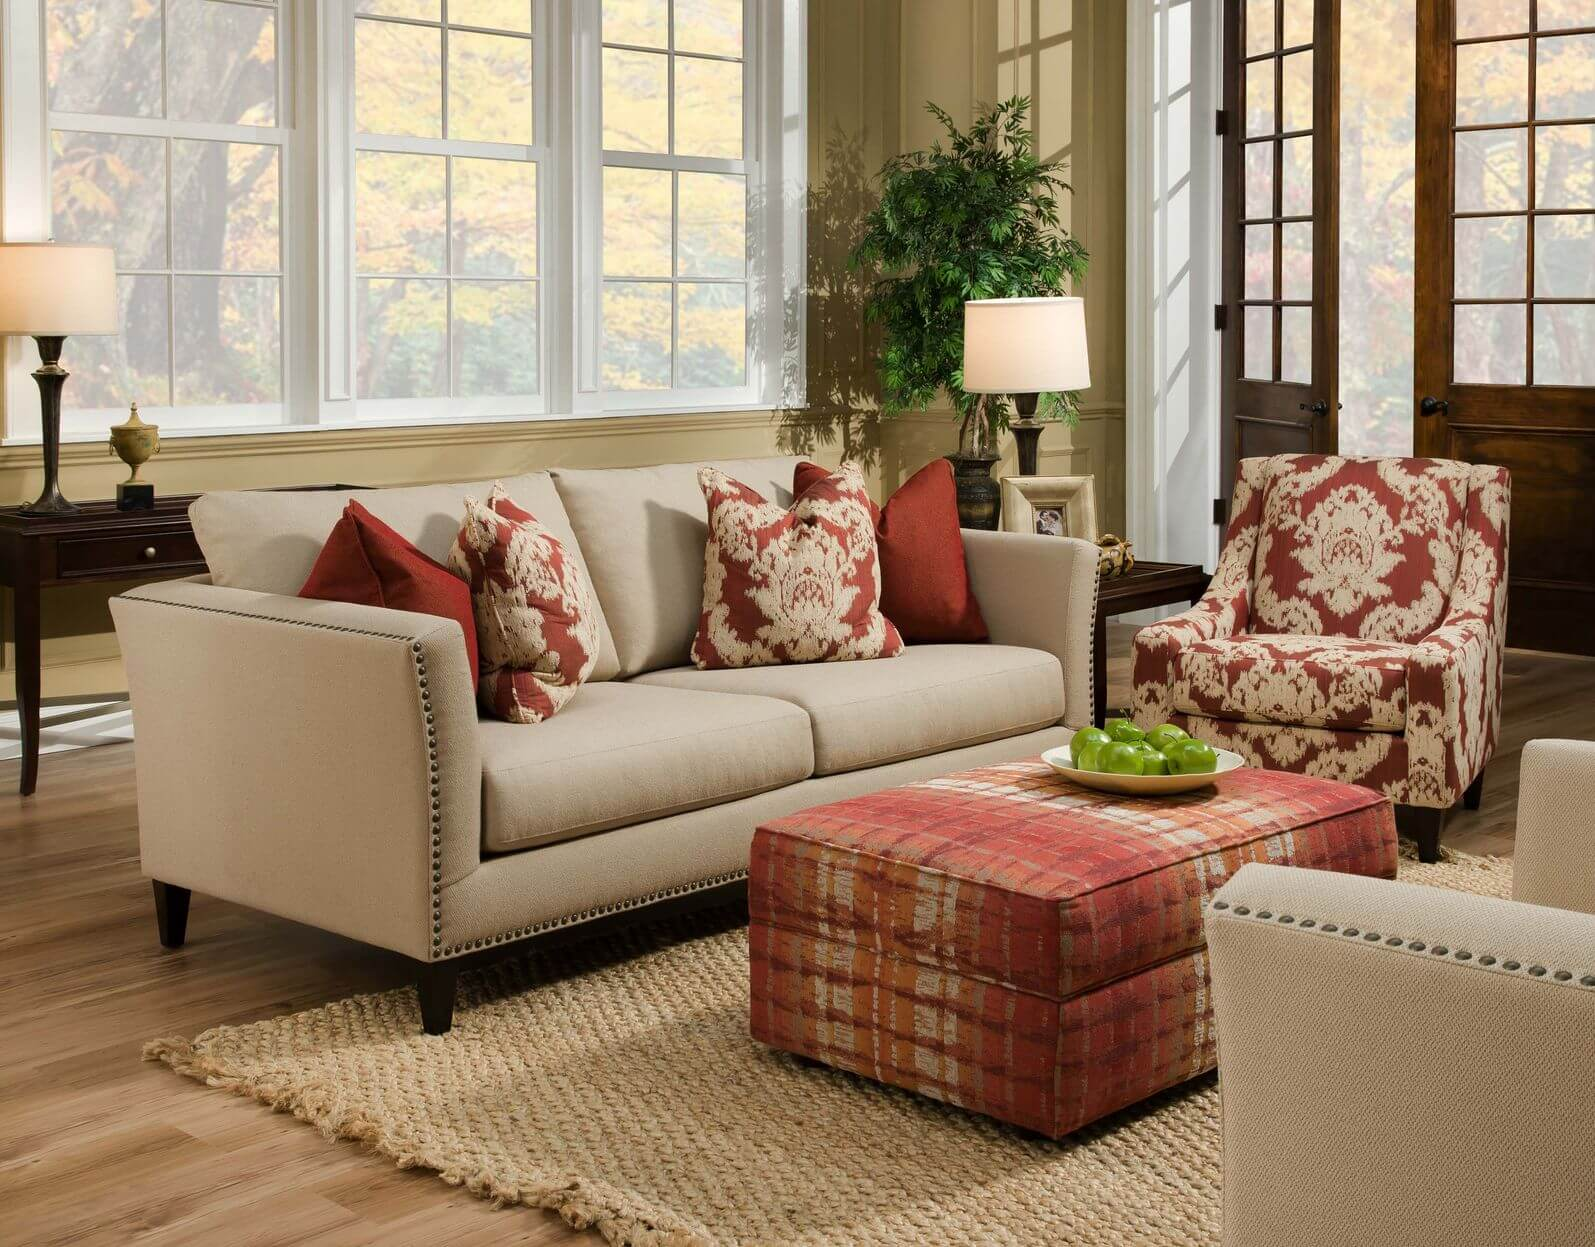 Superieur Beige Twin Couches Face Each Other Over Natural Hardwood Flooring And Tan  Rug In This Living